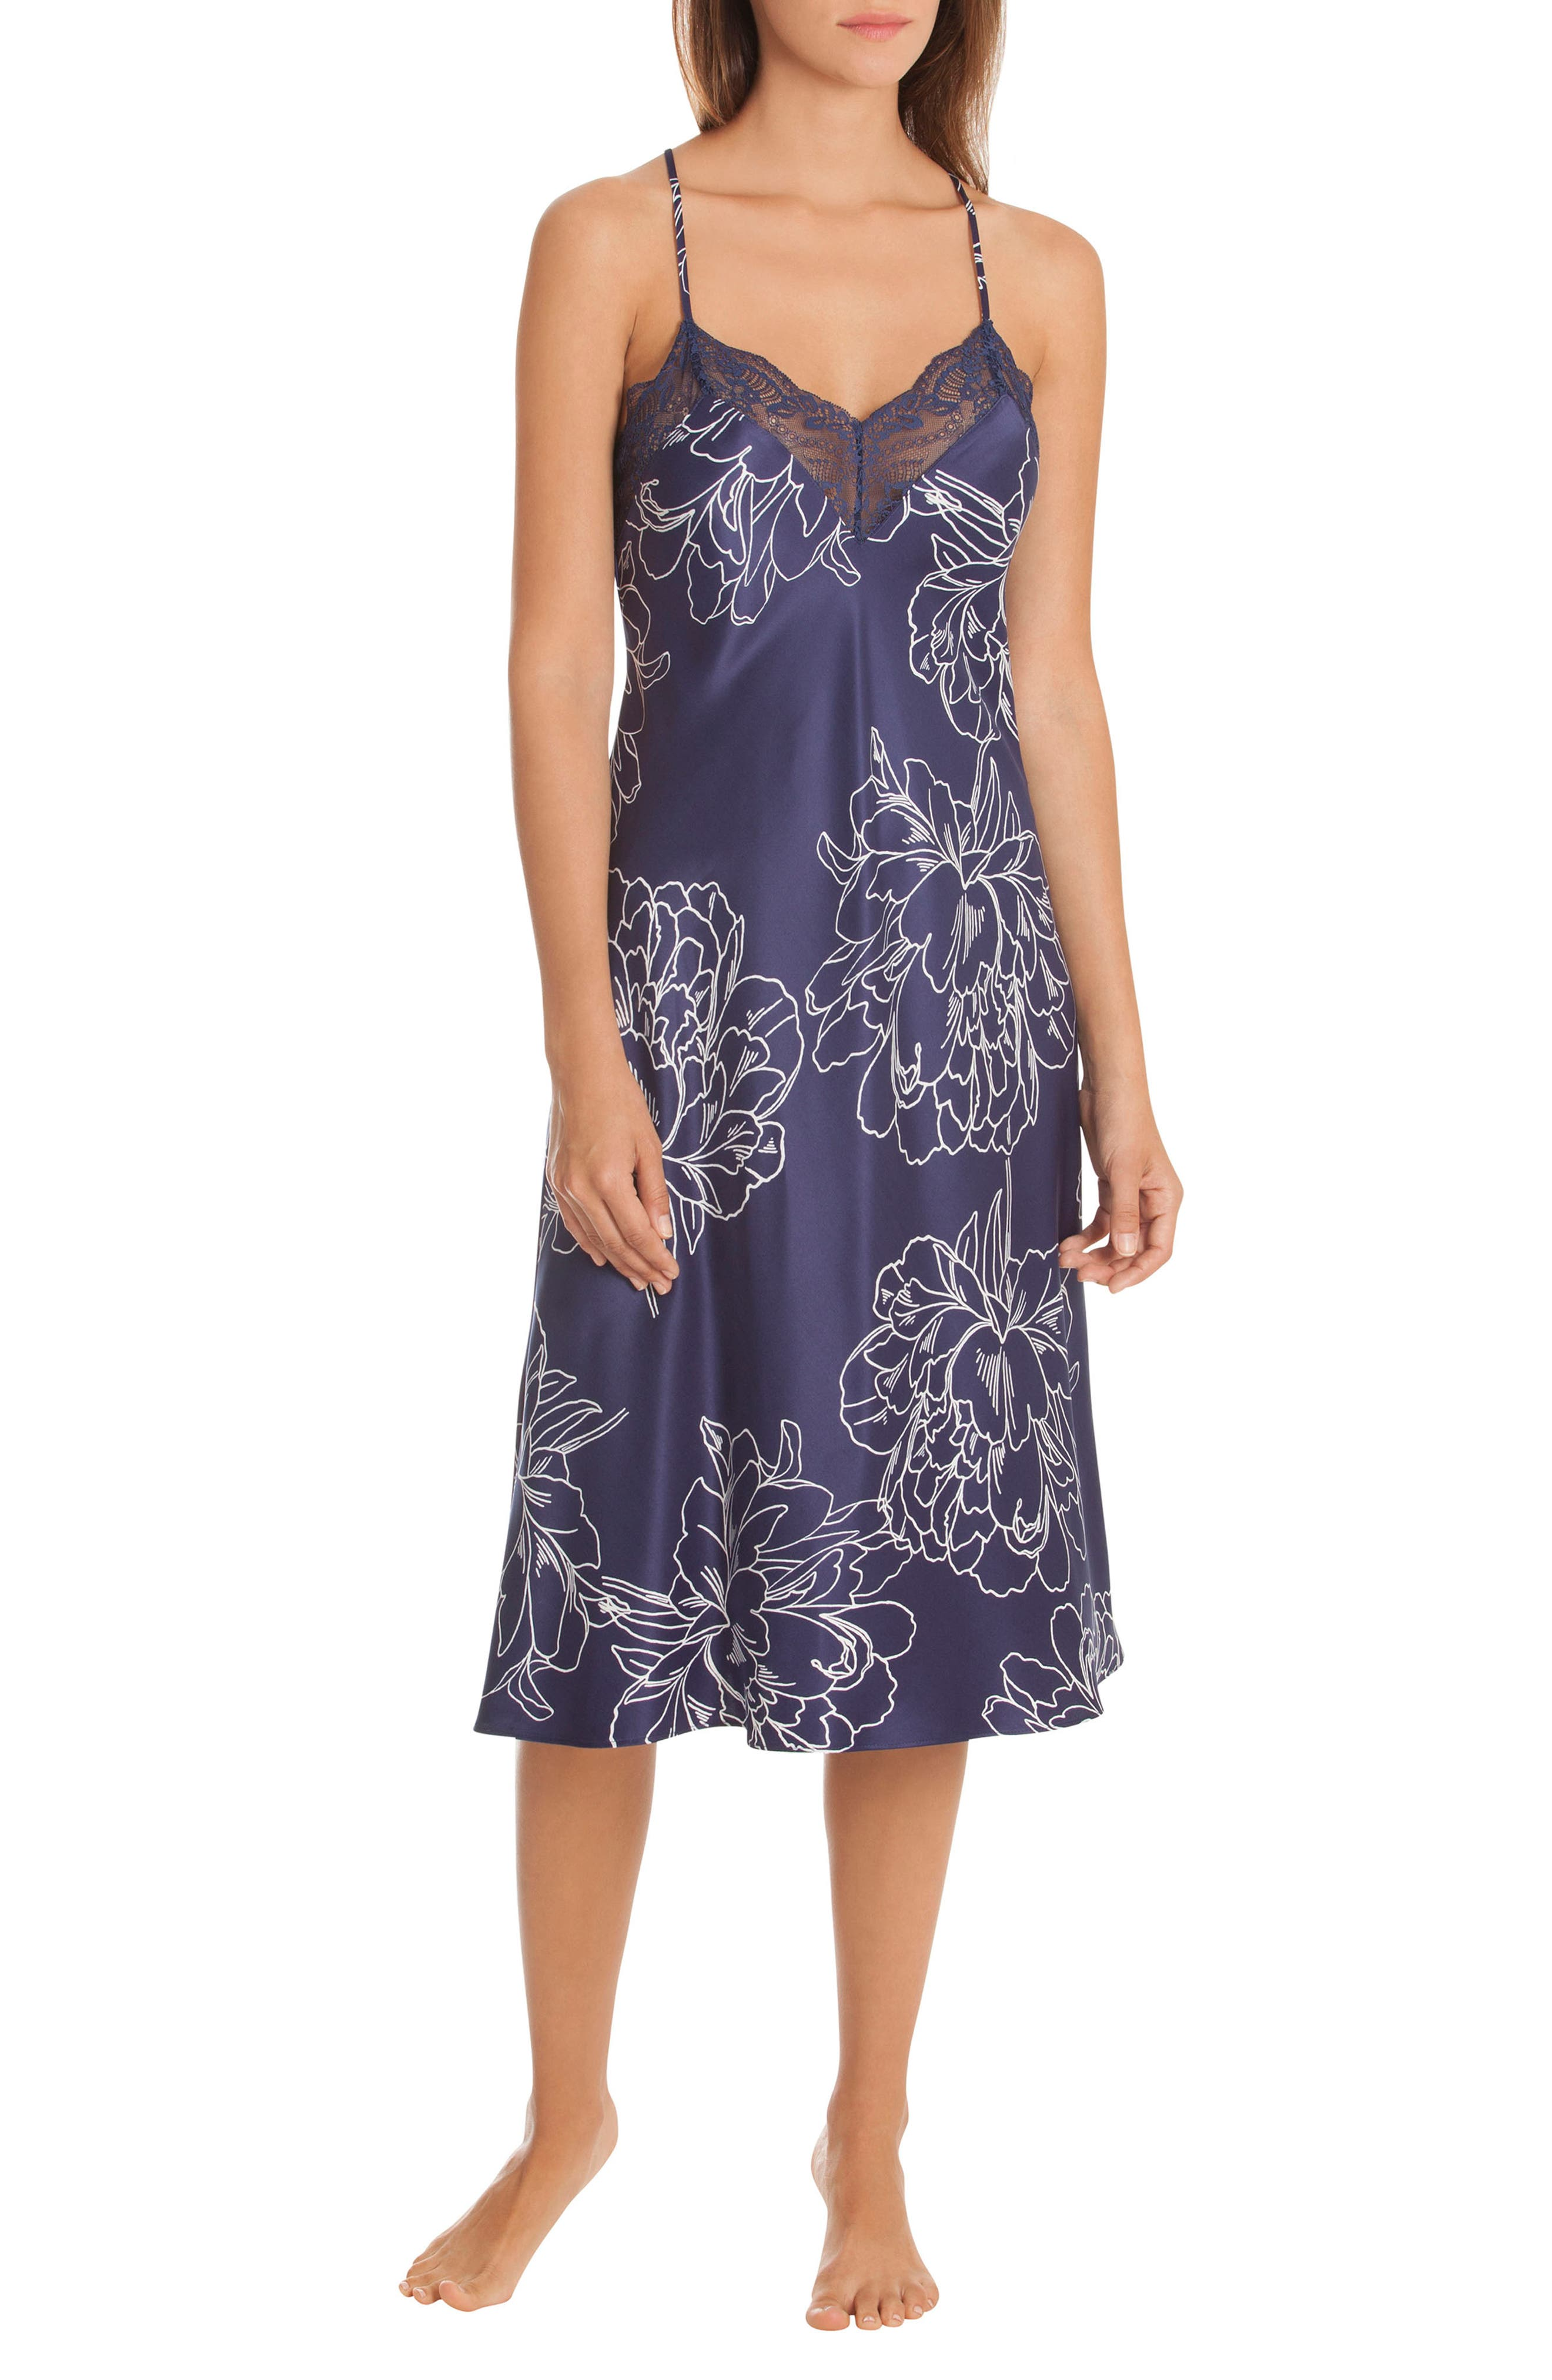 IN BLOOM BY JONQUIL ETCHED FLOWERS NIGHTGOWN